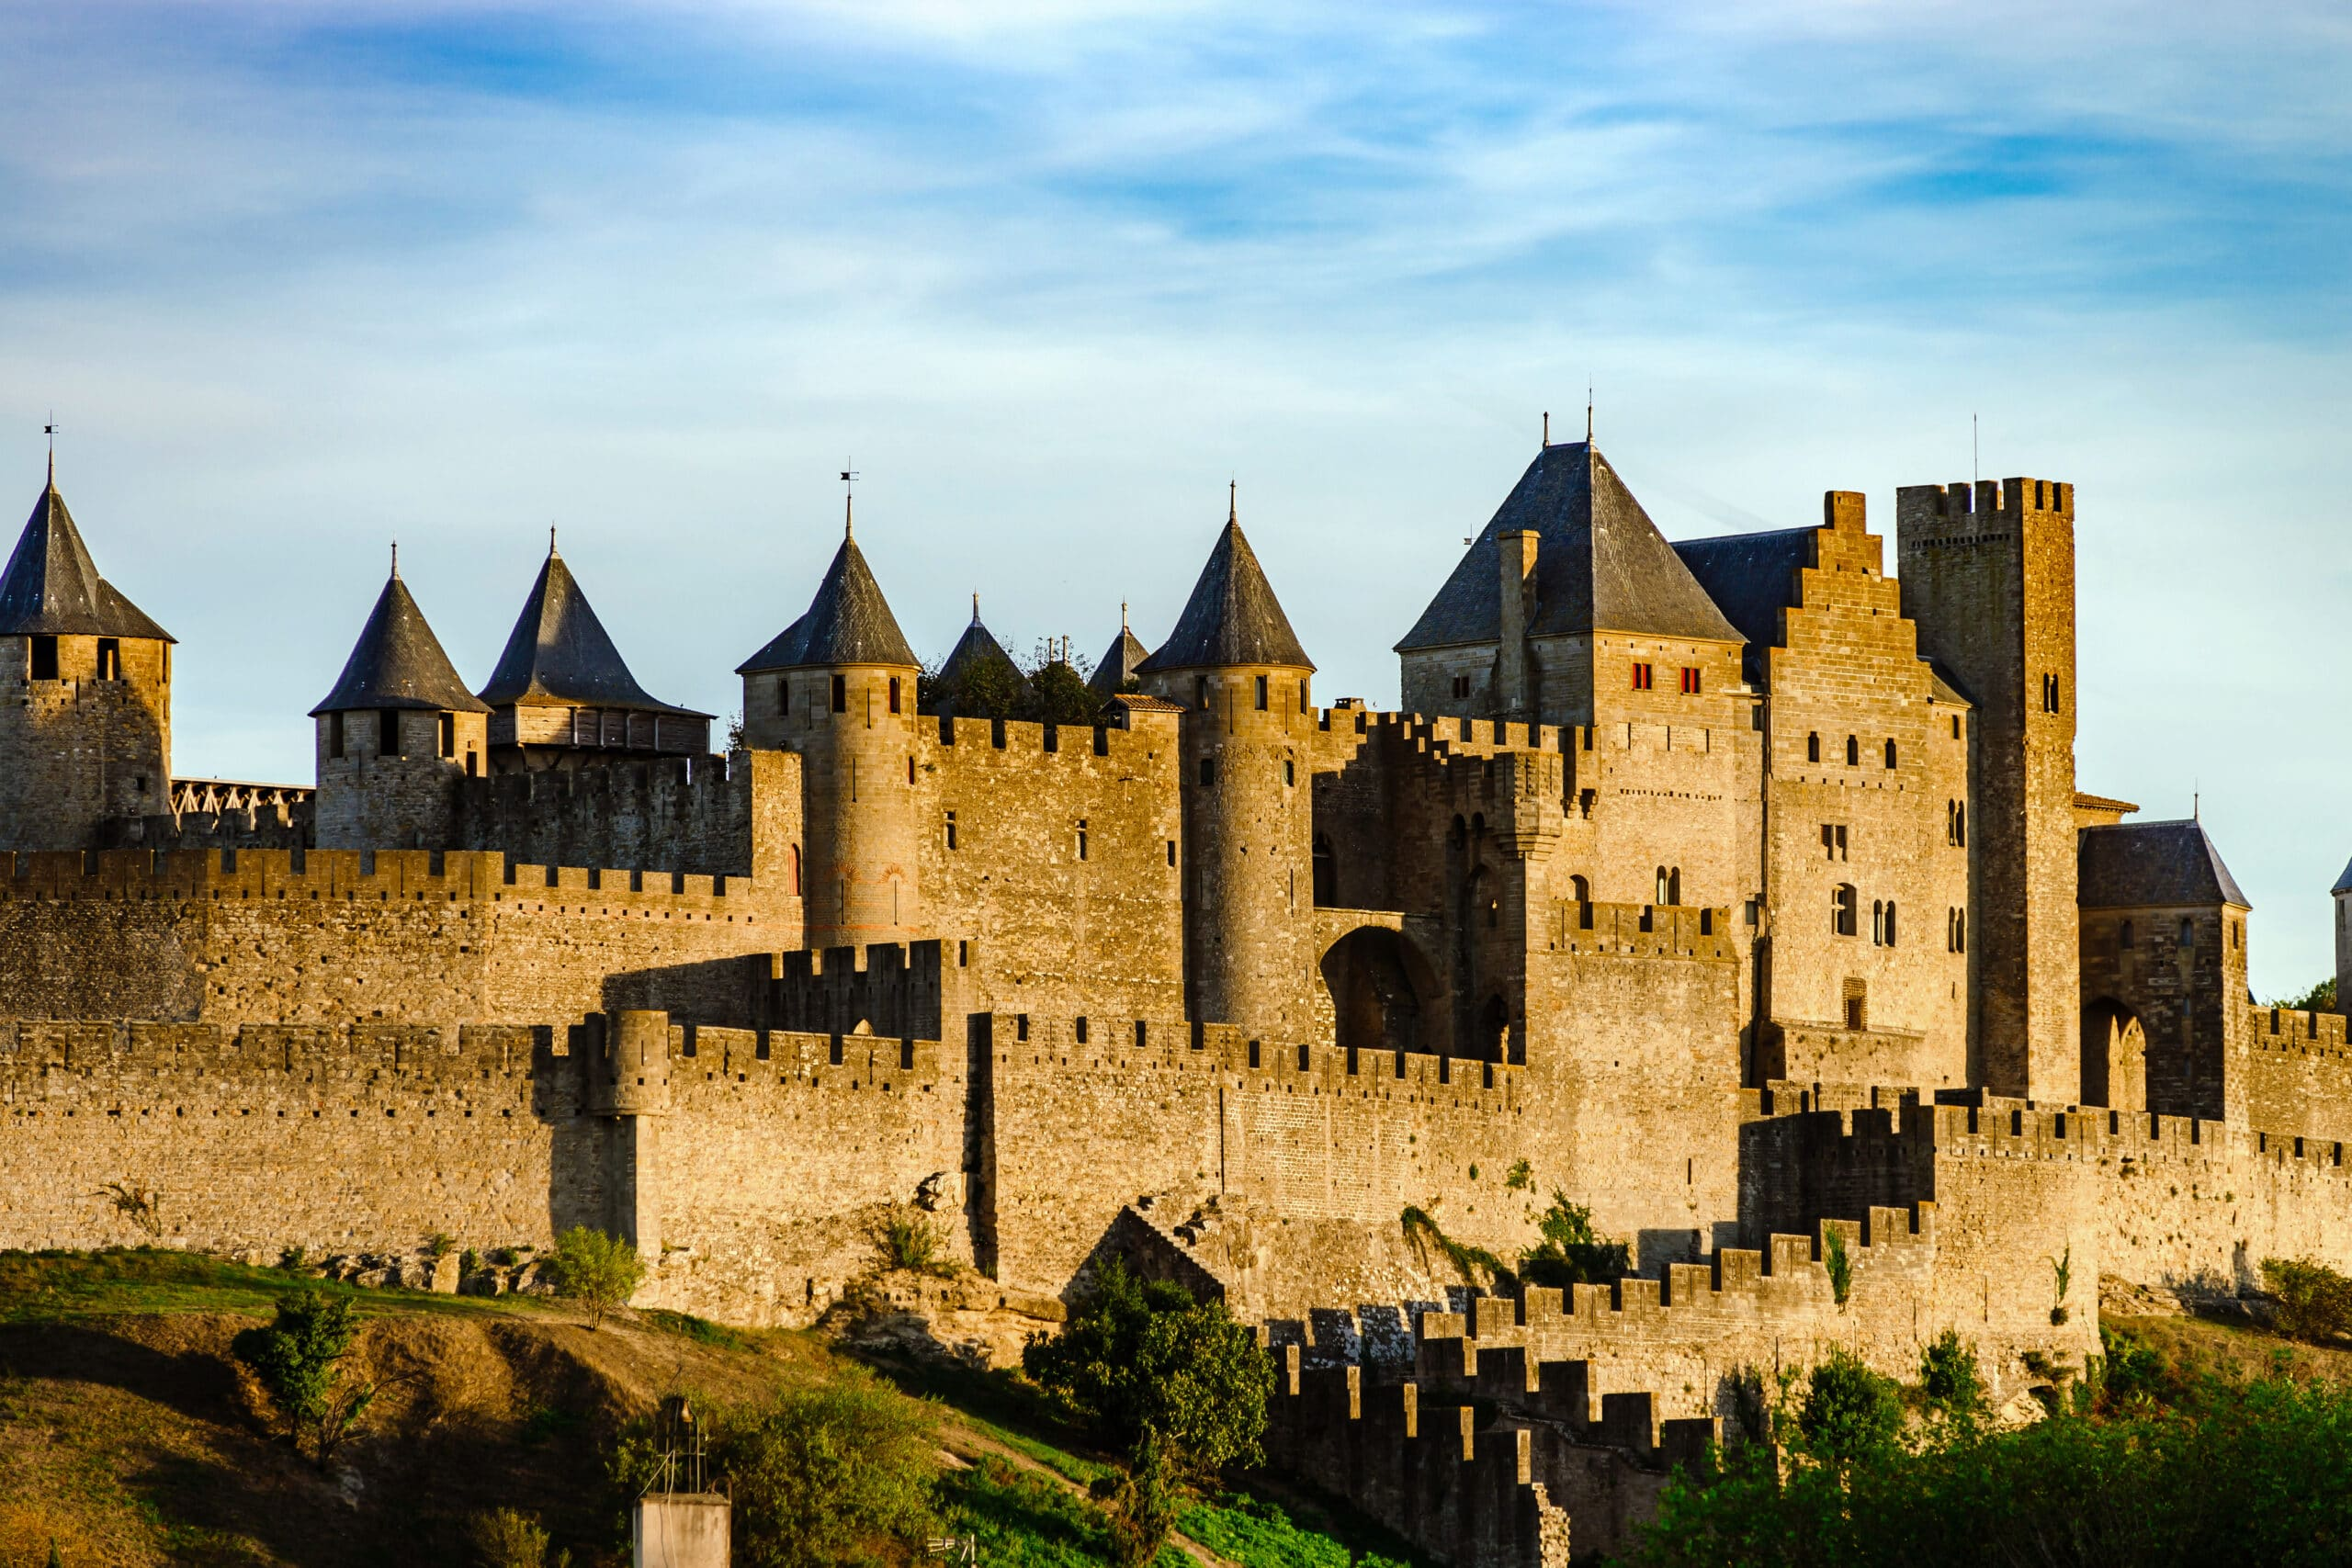 Carcassonne medieval fortress | jhtravel.org